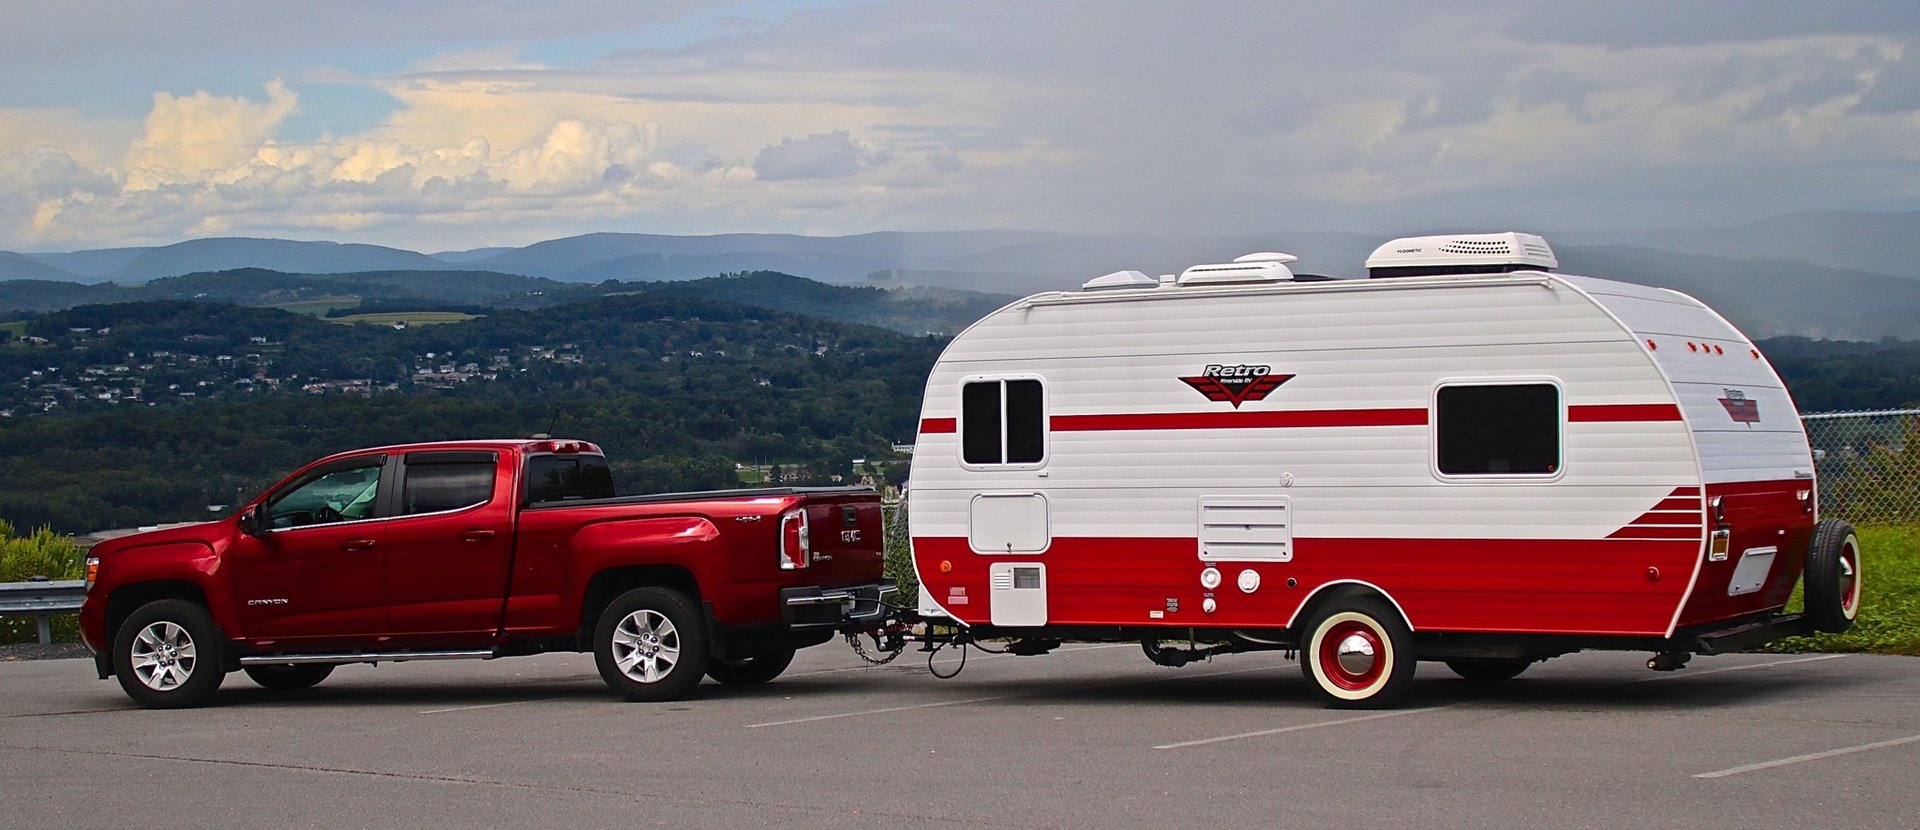 What are you towing with your Colorado? | Chevy Colorado